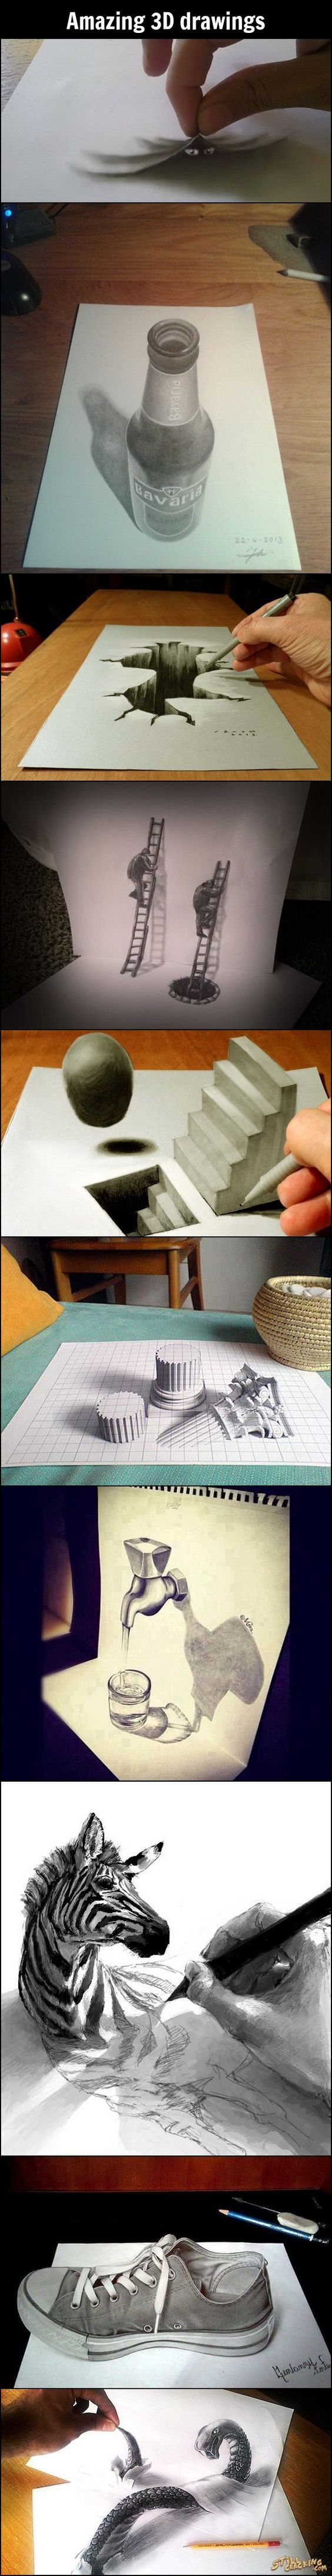 Amazing 3D Drawings: